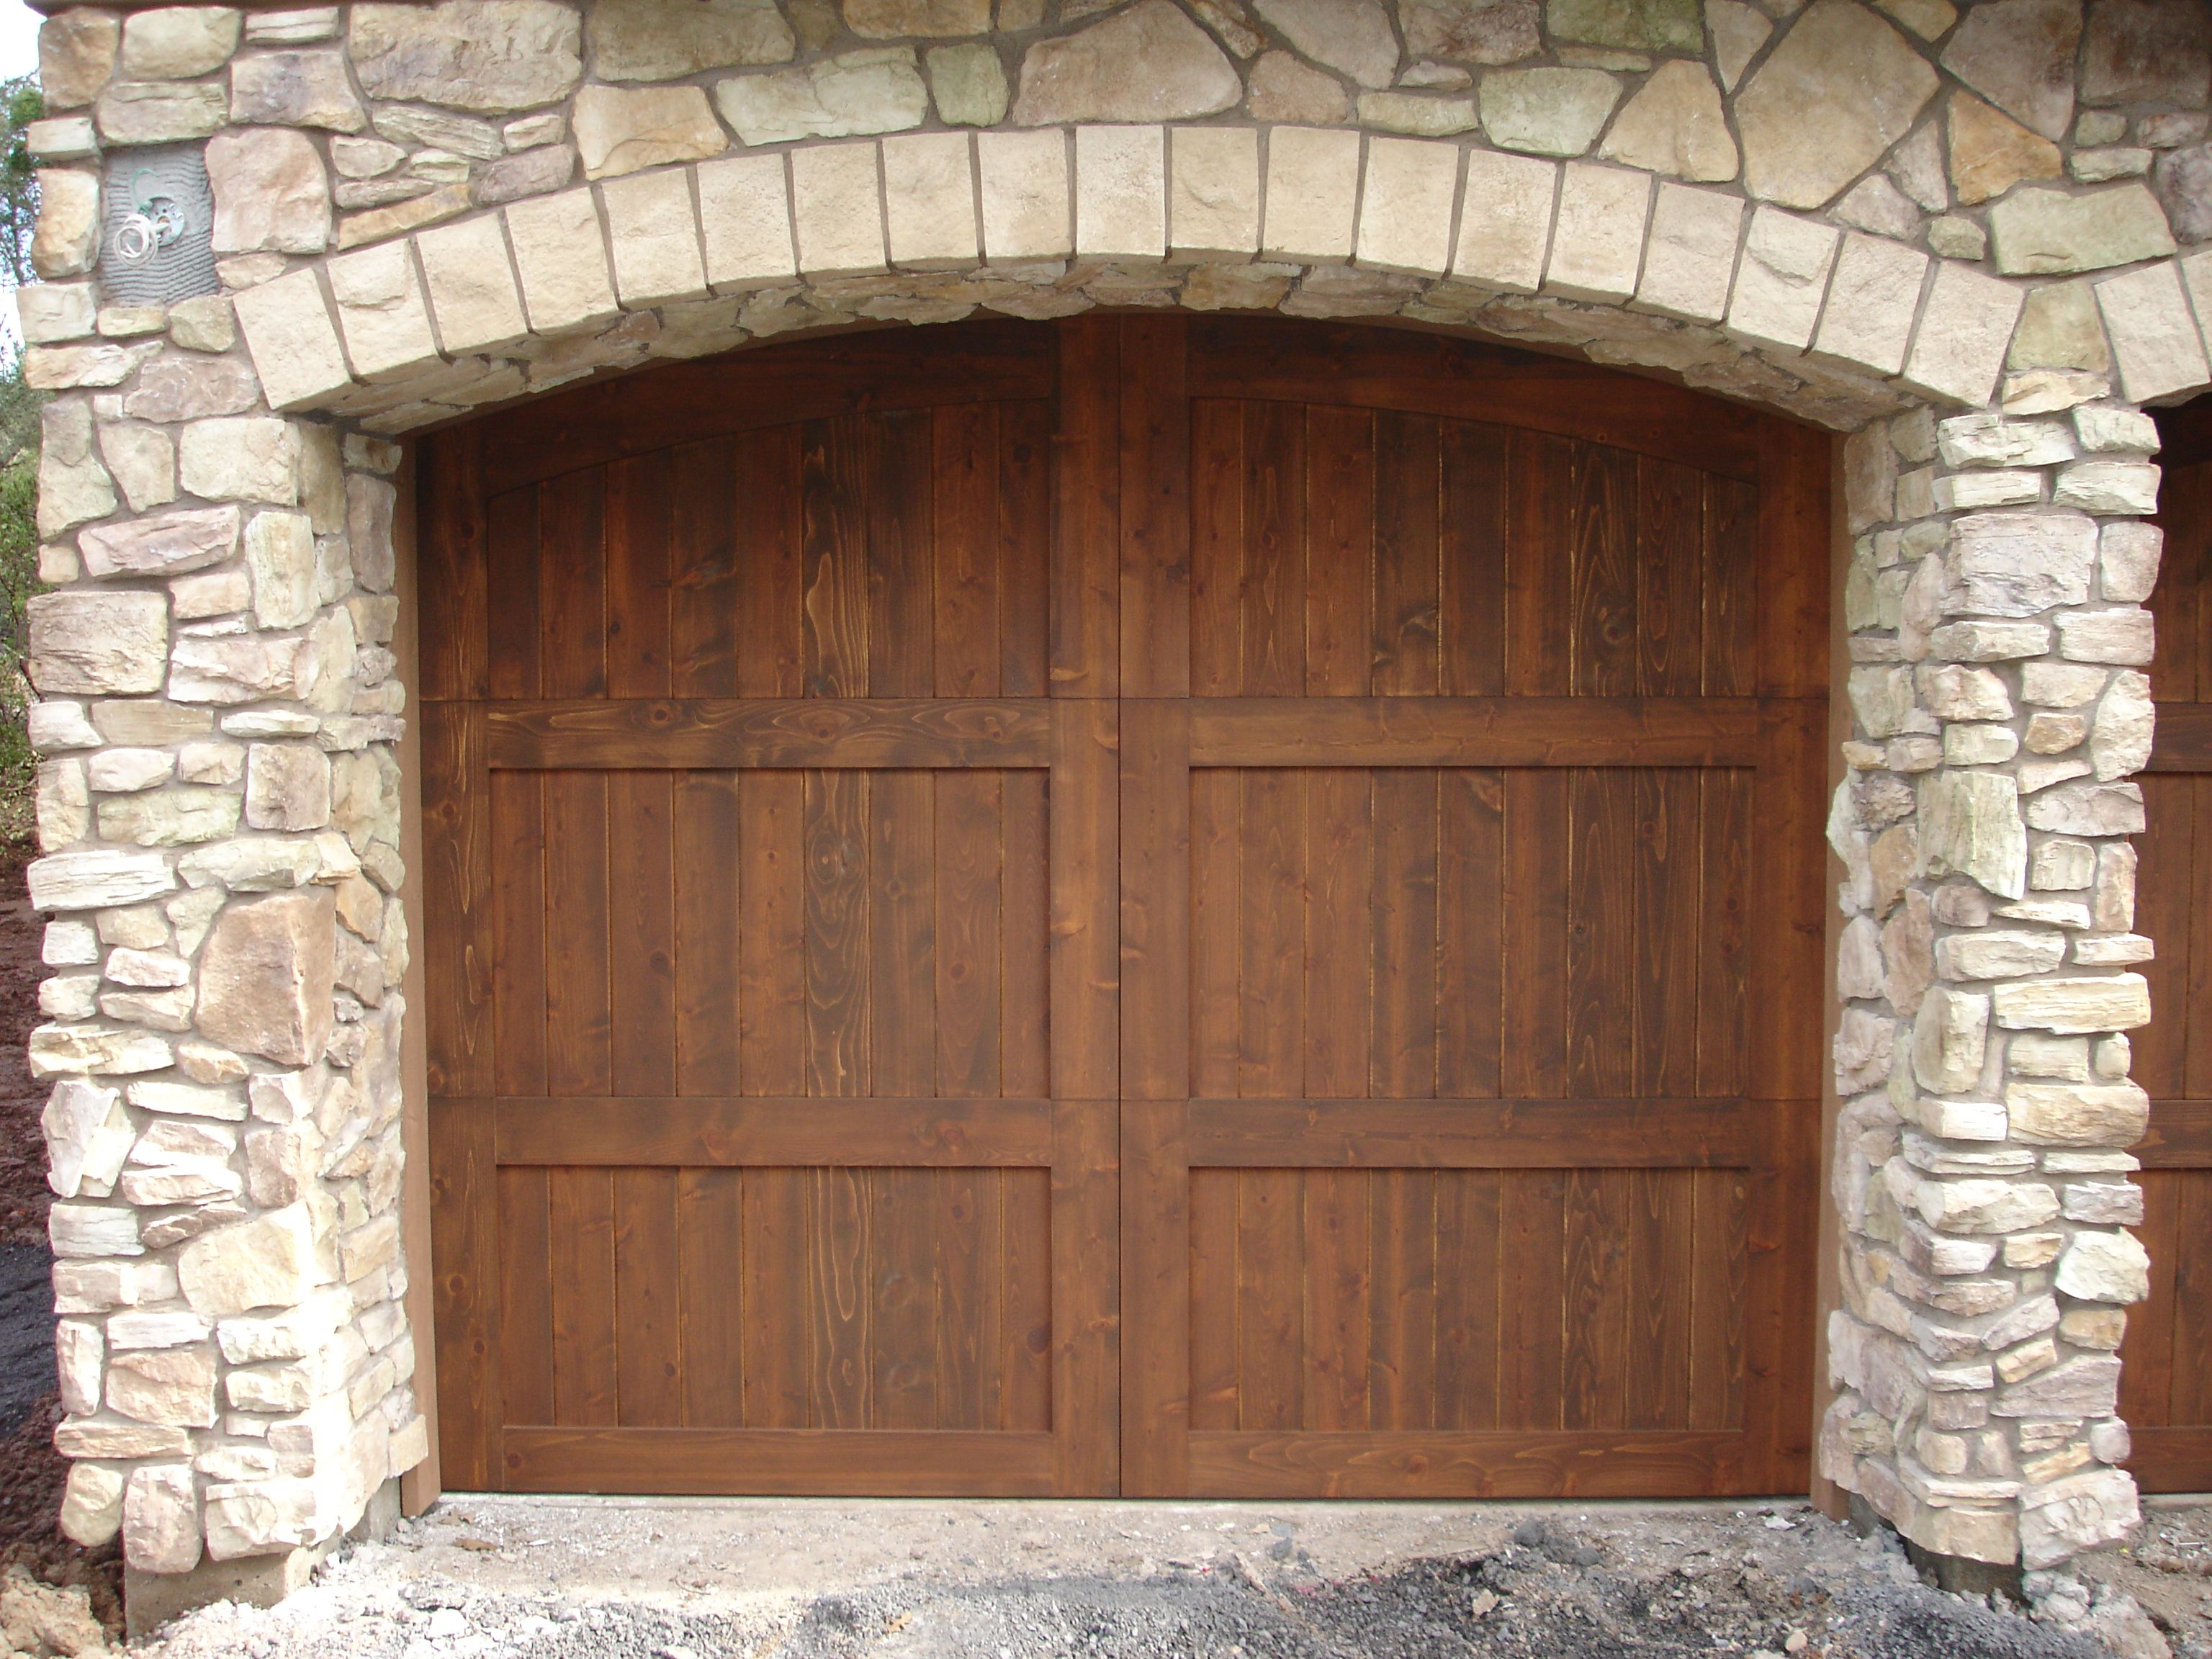 garage doors that look wood but are not wood pics - Google Search ...